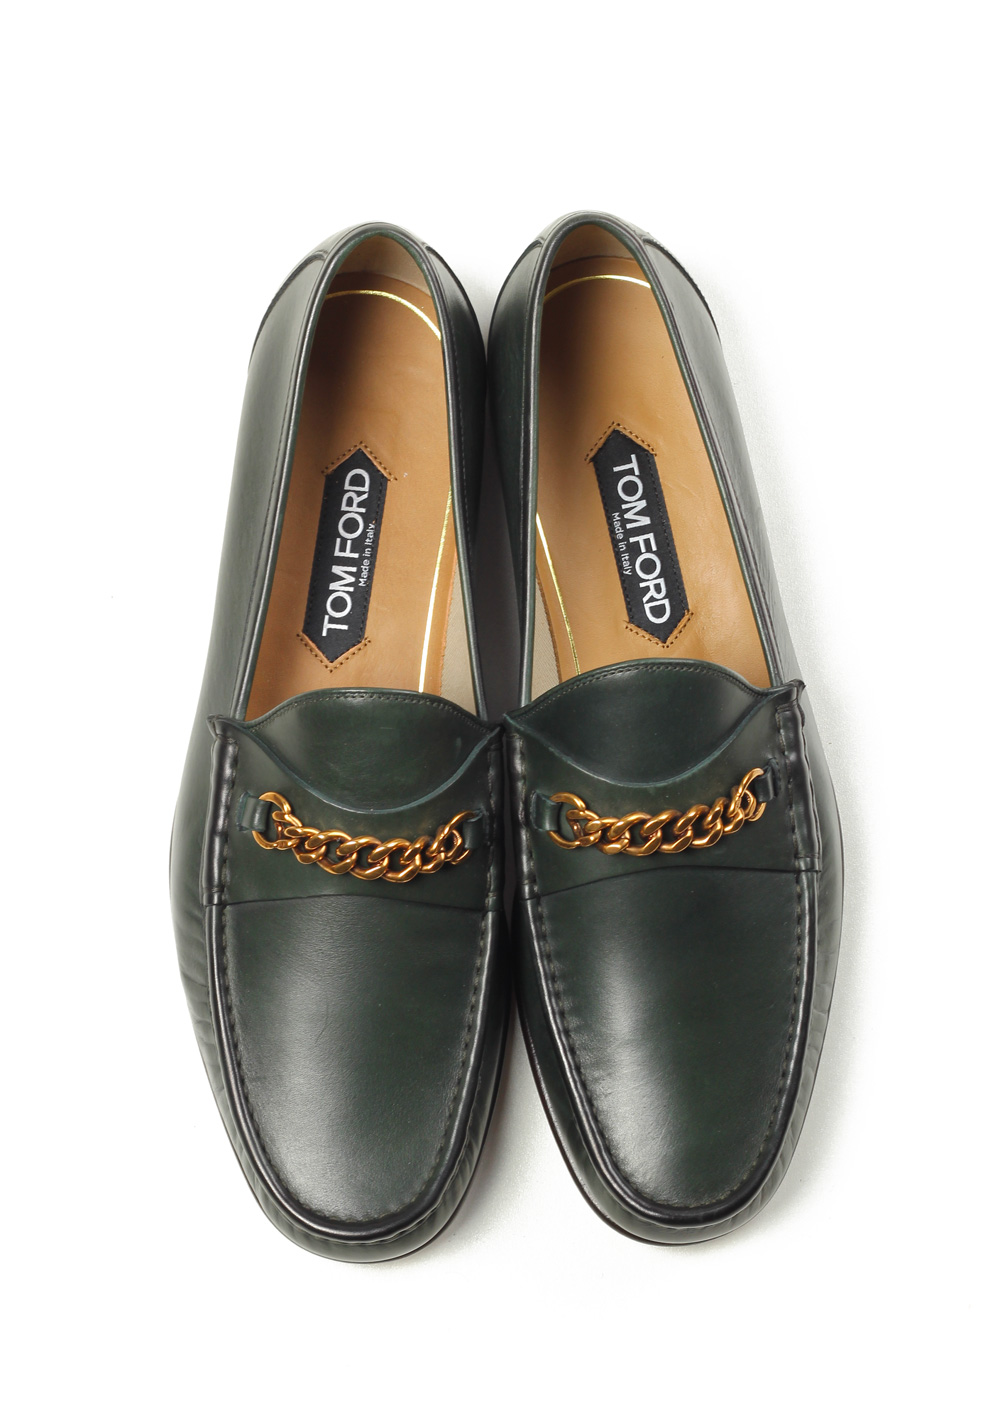 TOM FORD York Green Leather Chain Loafers Shoes Size 9,5 UK / 10,5 U.S. | Costume Limité